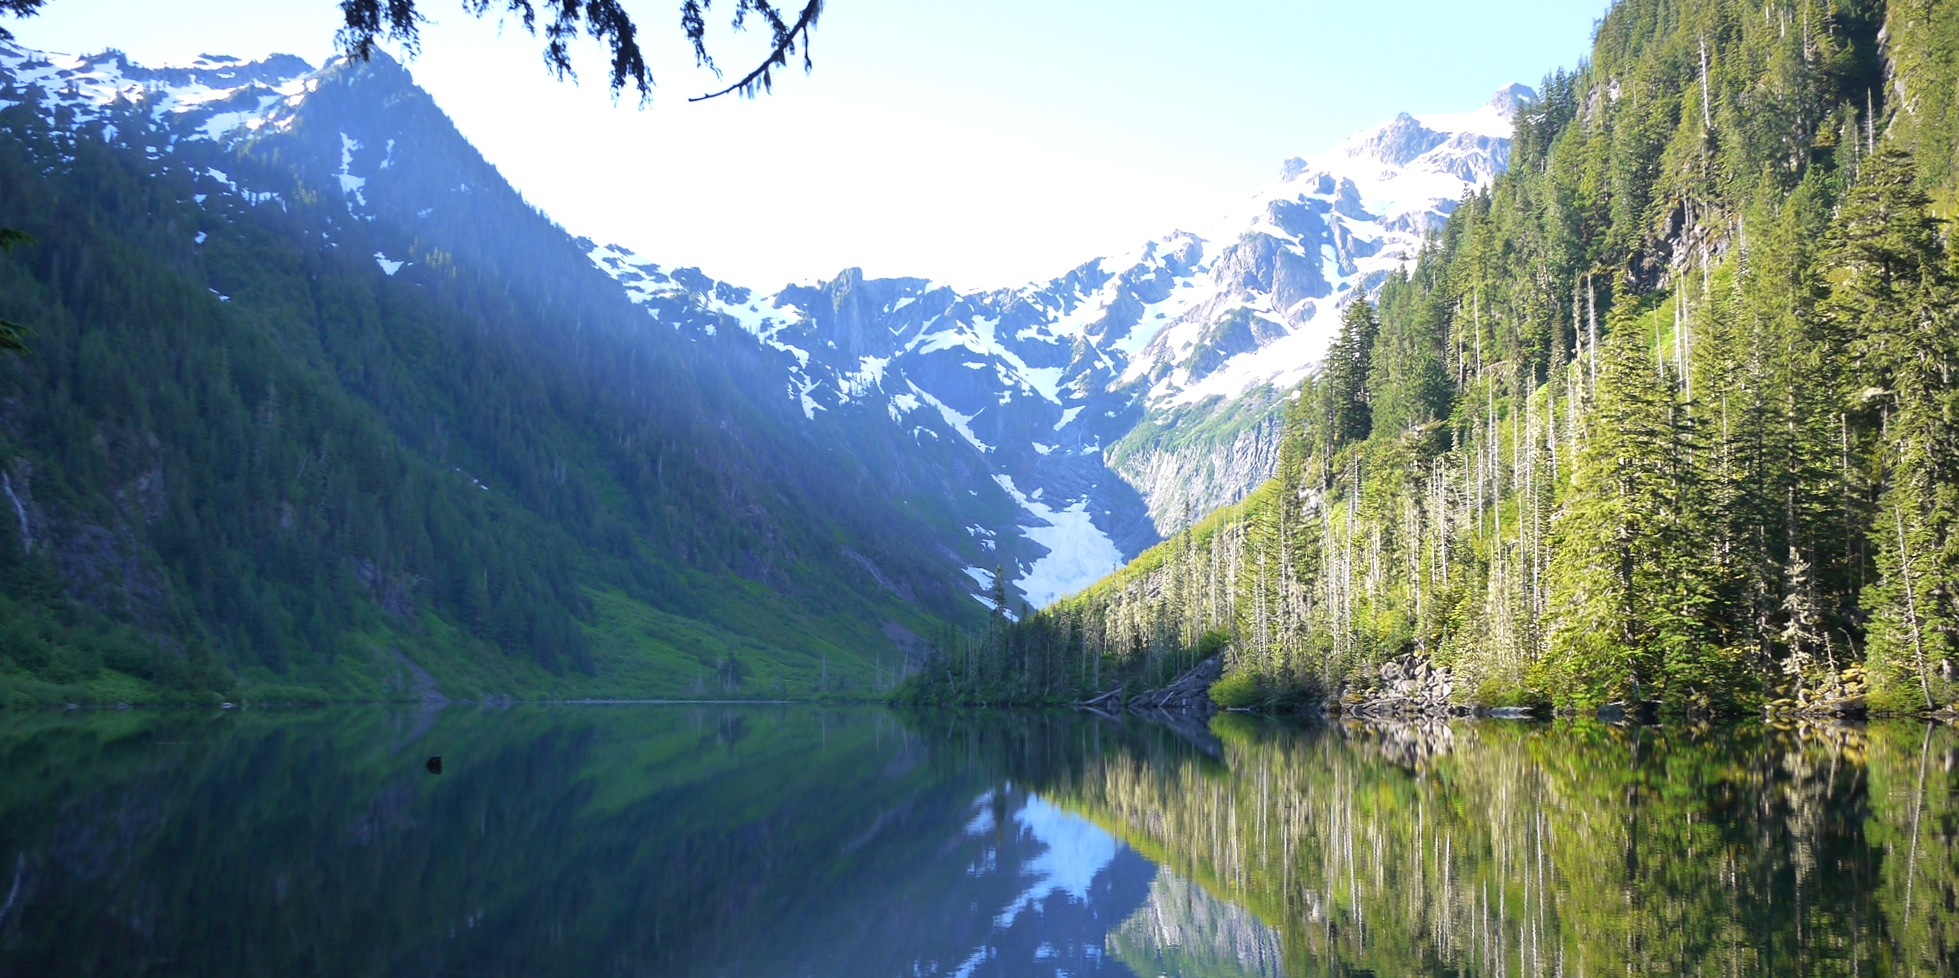 Goat Lake Trail An Easy Washington Hike Ending In Epic